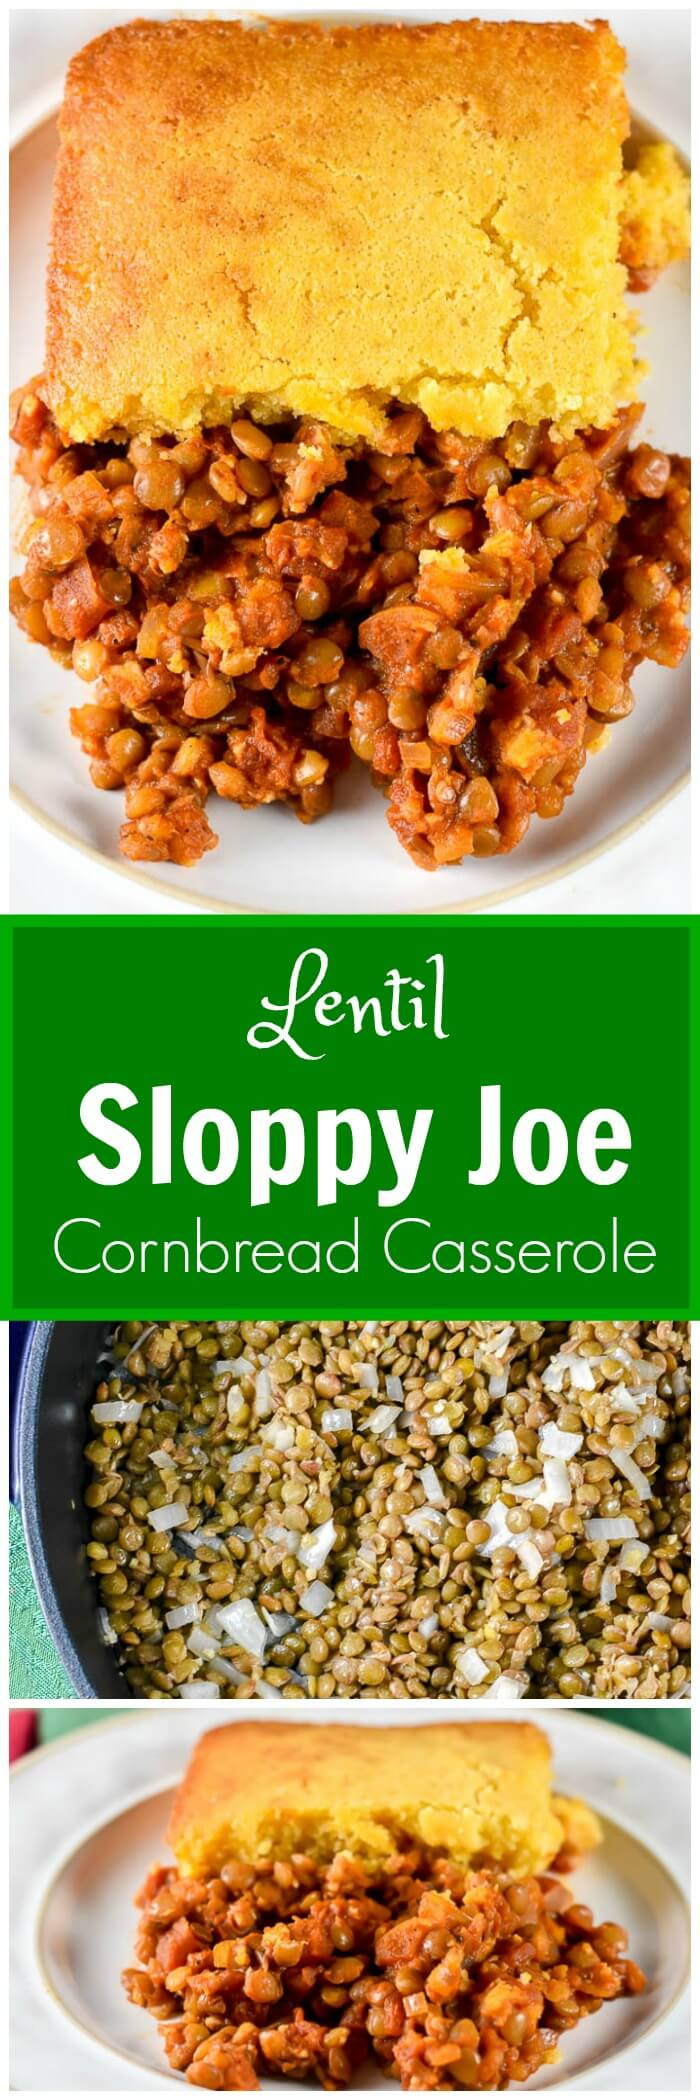 Lentil Sloppy Joe Cornbread